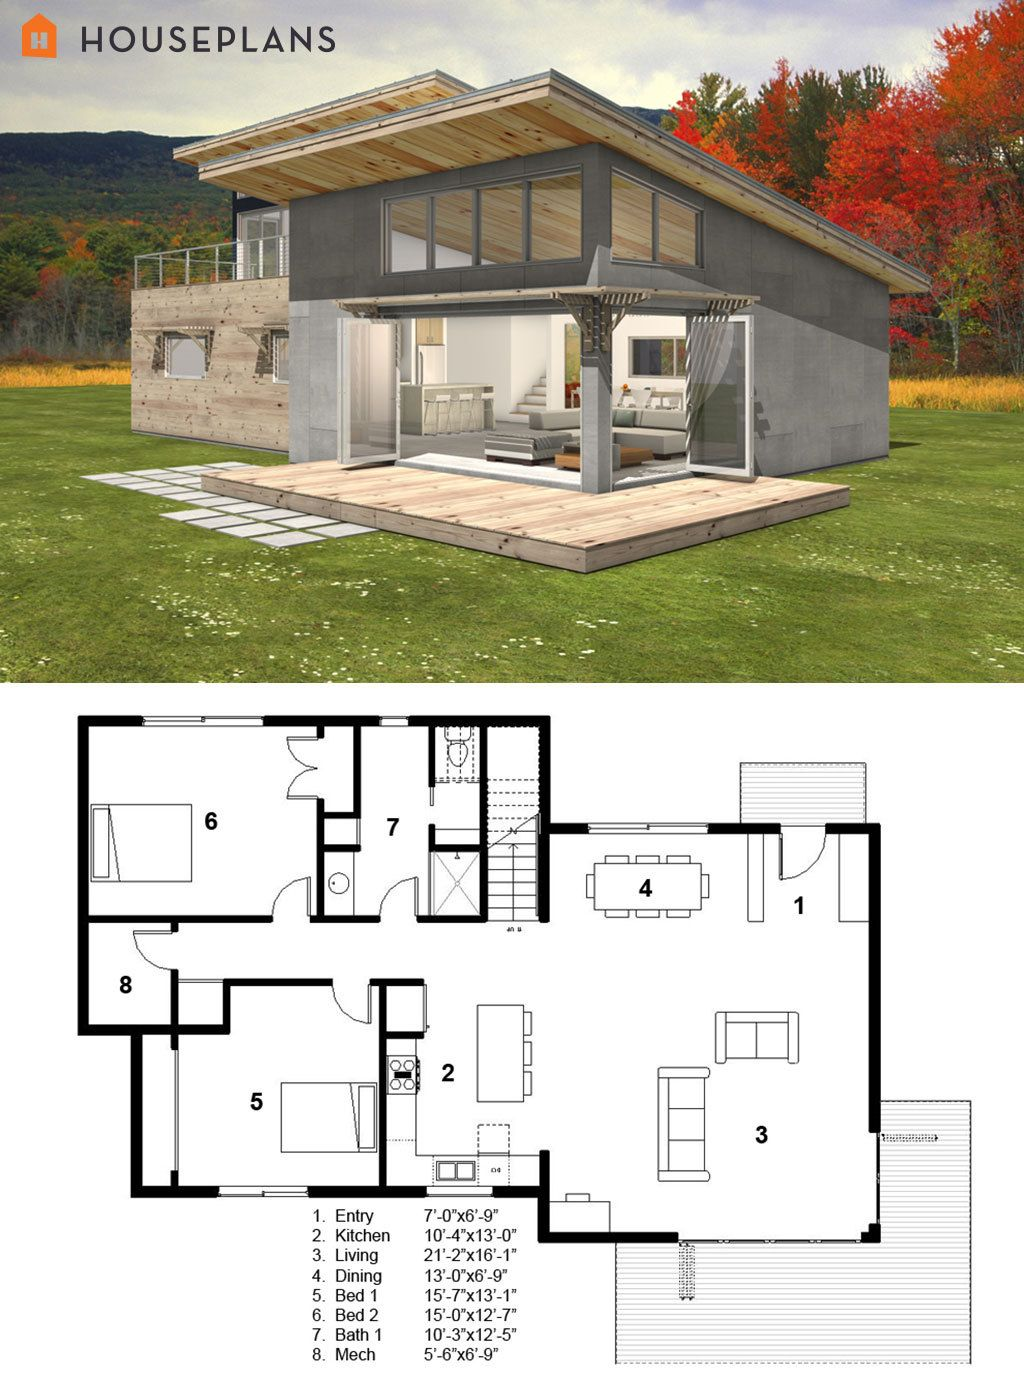 Small modern cabin house plan by freegreen energy efficient house plans pinterest cabin Simple modern house designs and floor plans